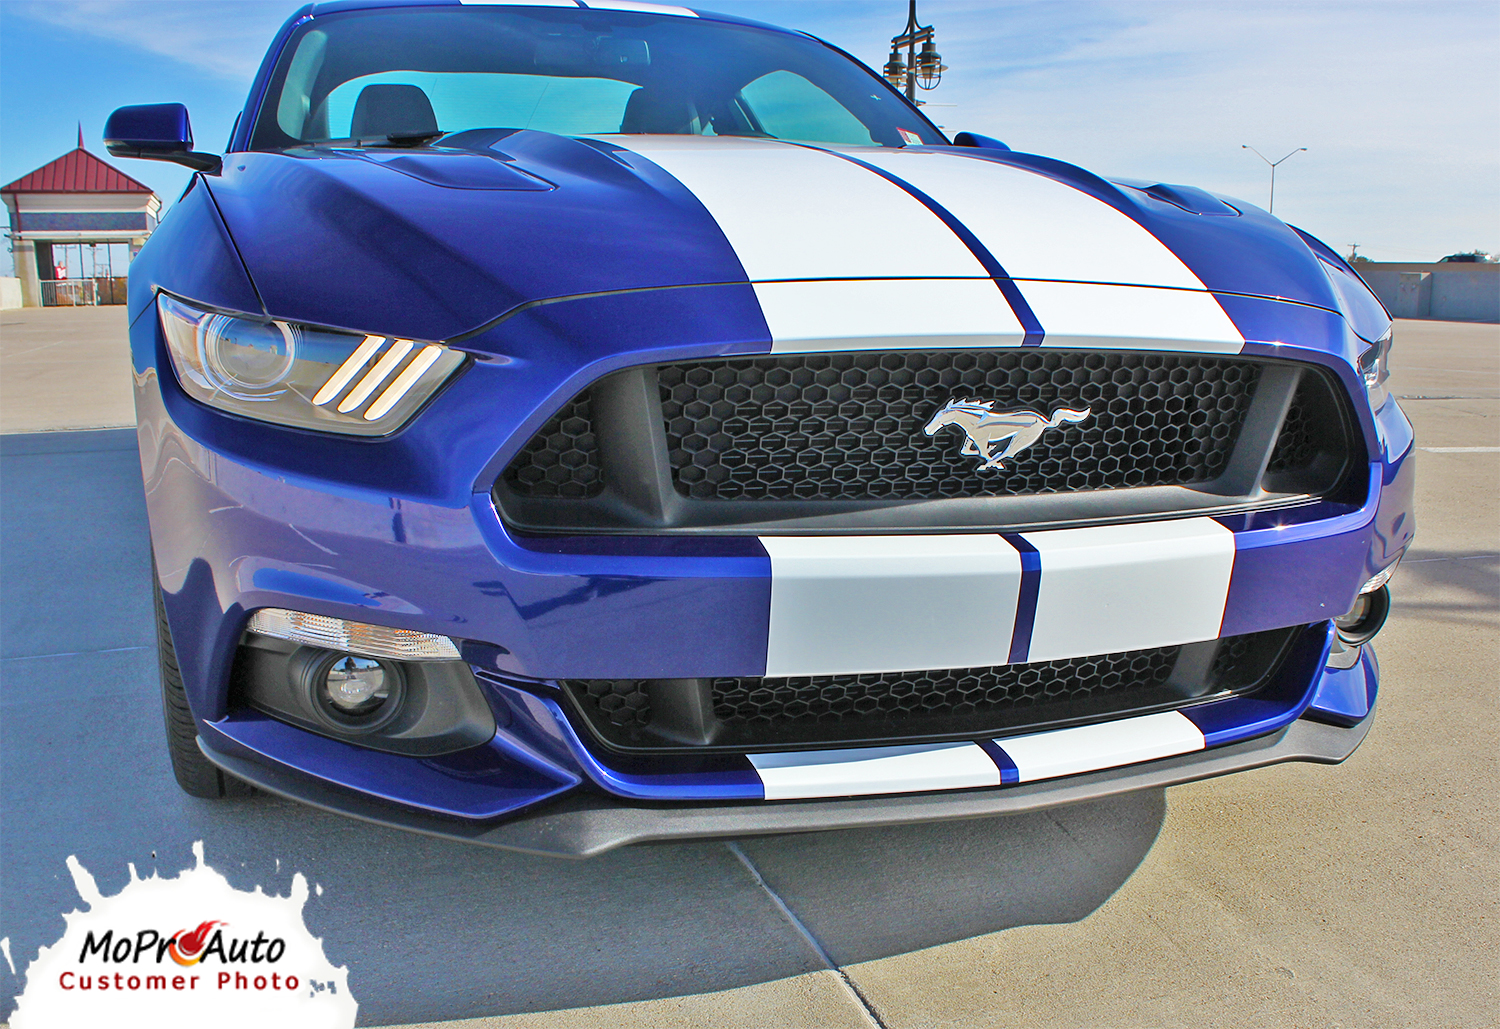 STALLION: Ford Mustang 2015+ MoProAuto Pro Design Series Vinyl Graphics and Decals Kit